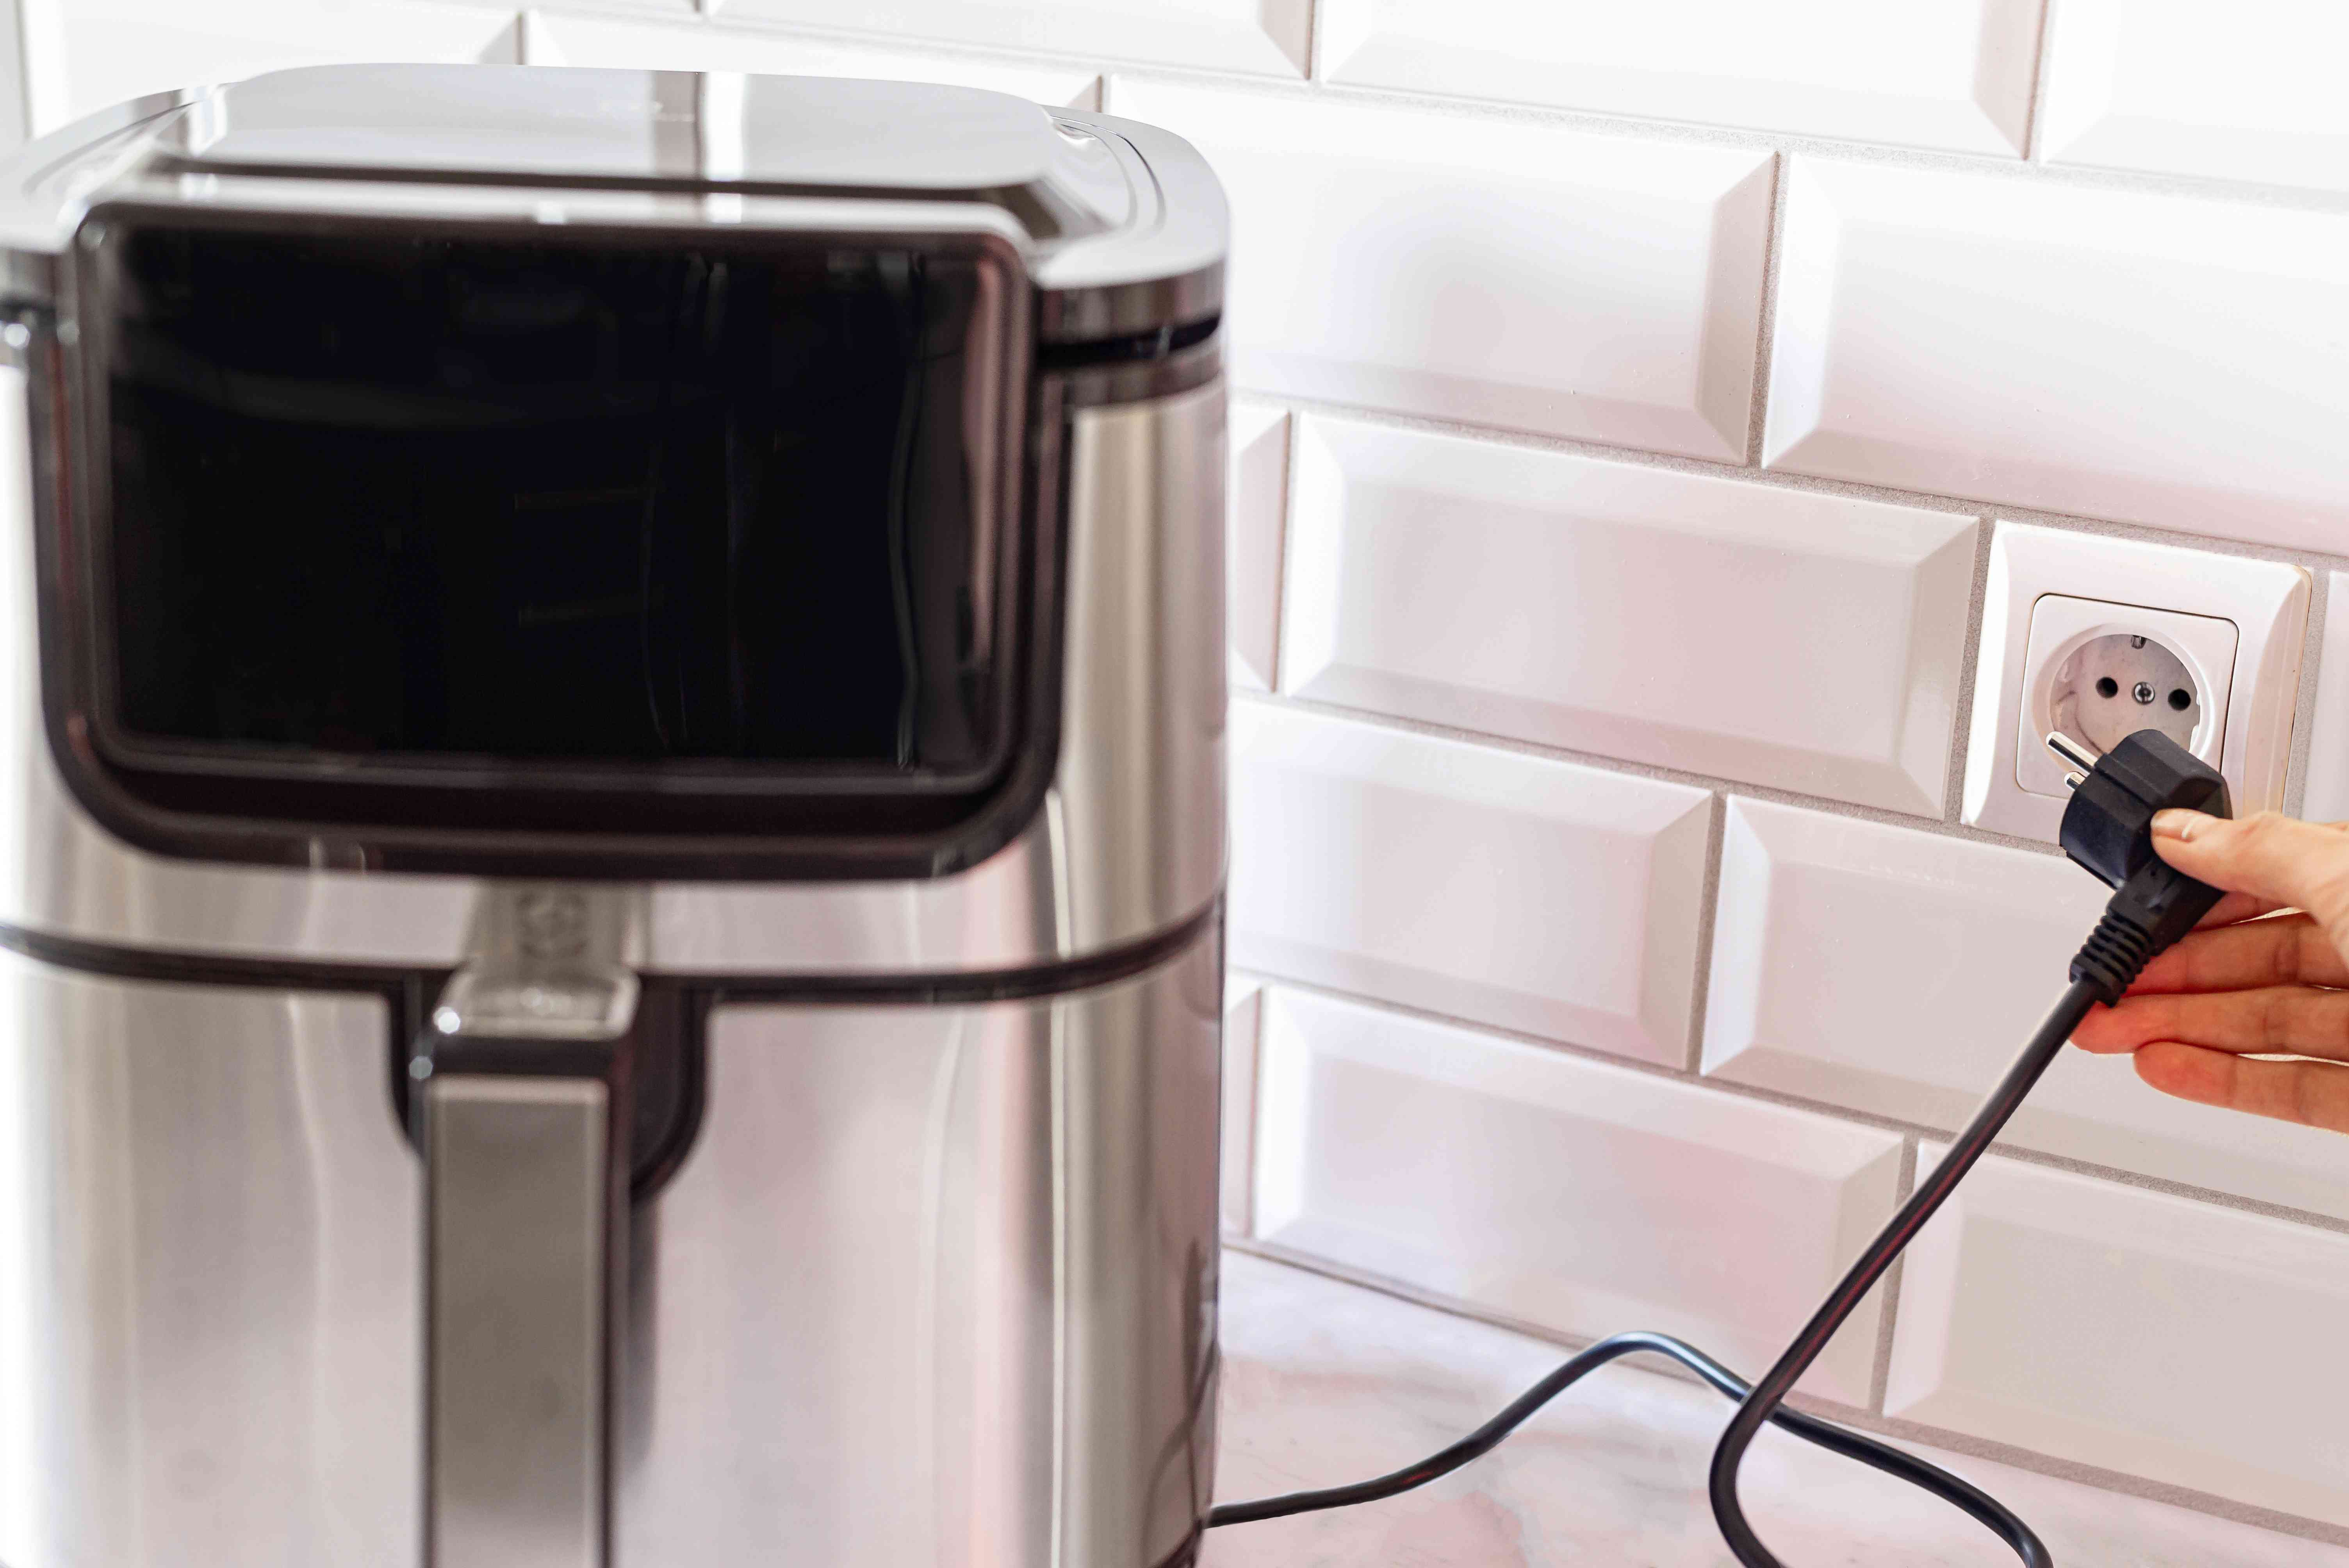 Stainless steel air fryer unplugged from wall to cool